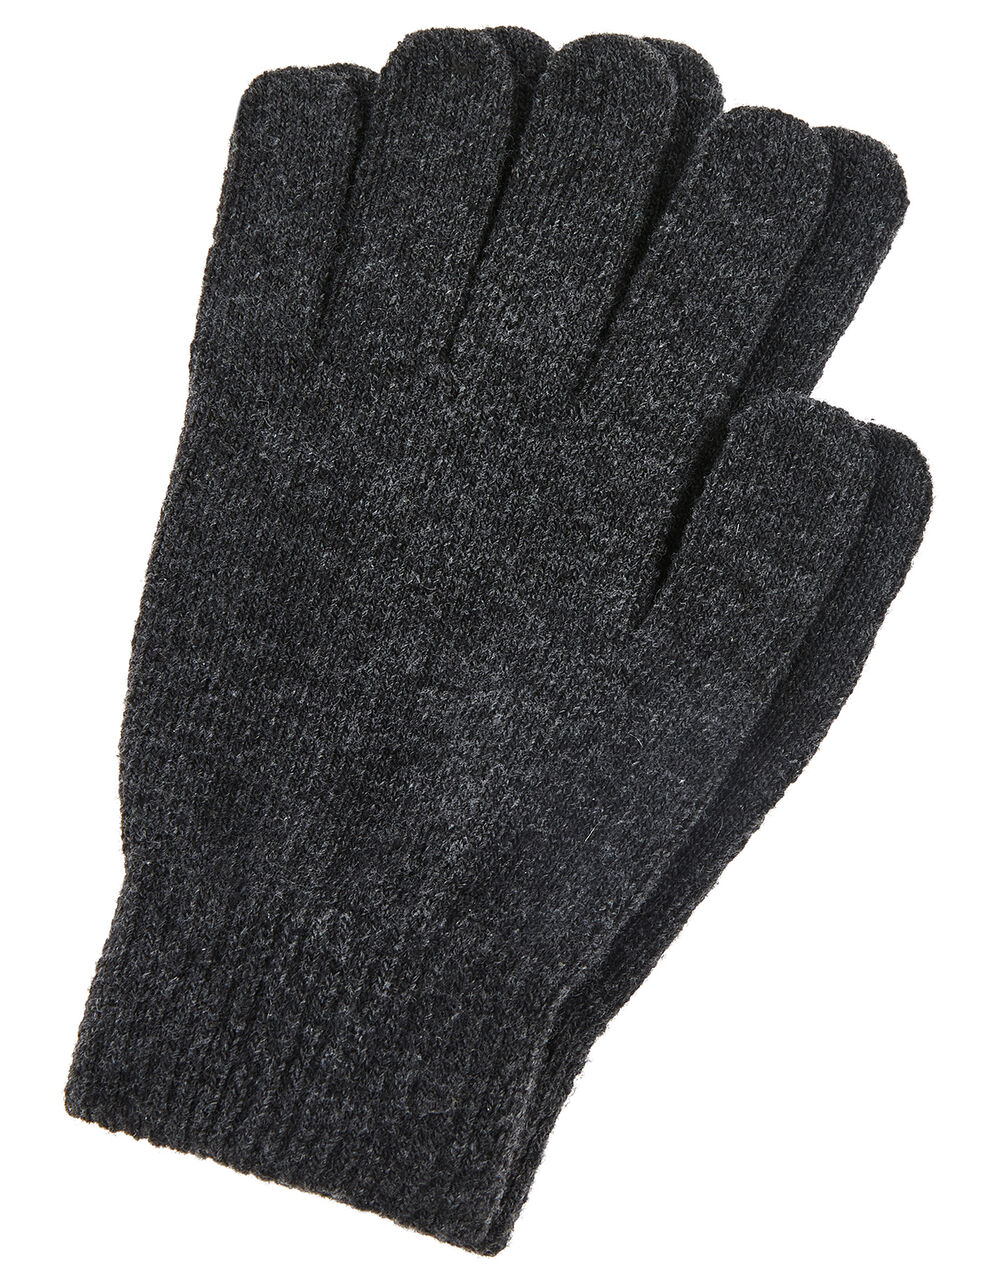 Super-Stretch Gloves with Recycled Polyester, Grey (GREY), large